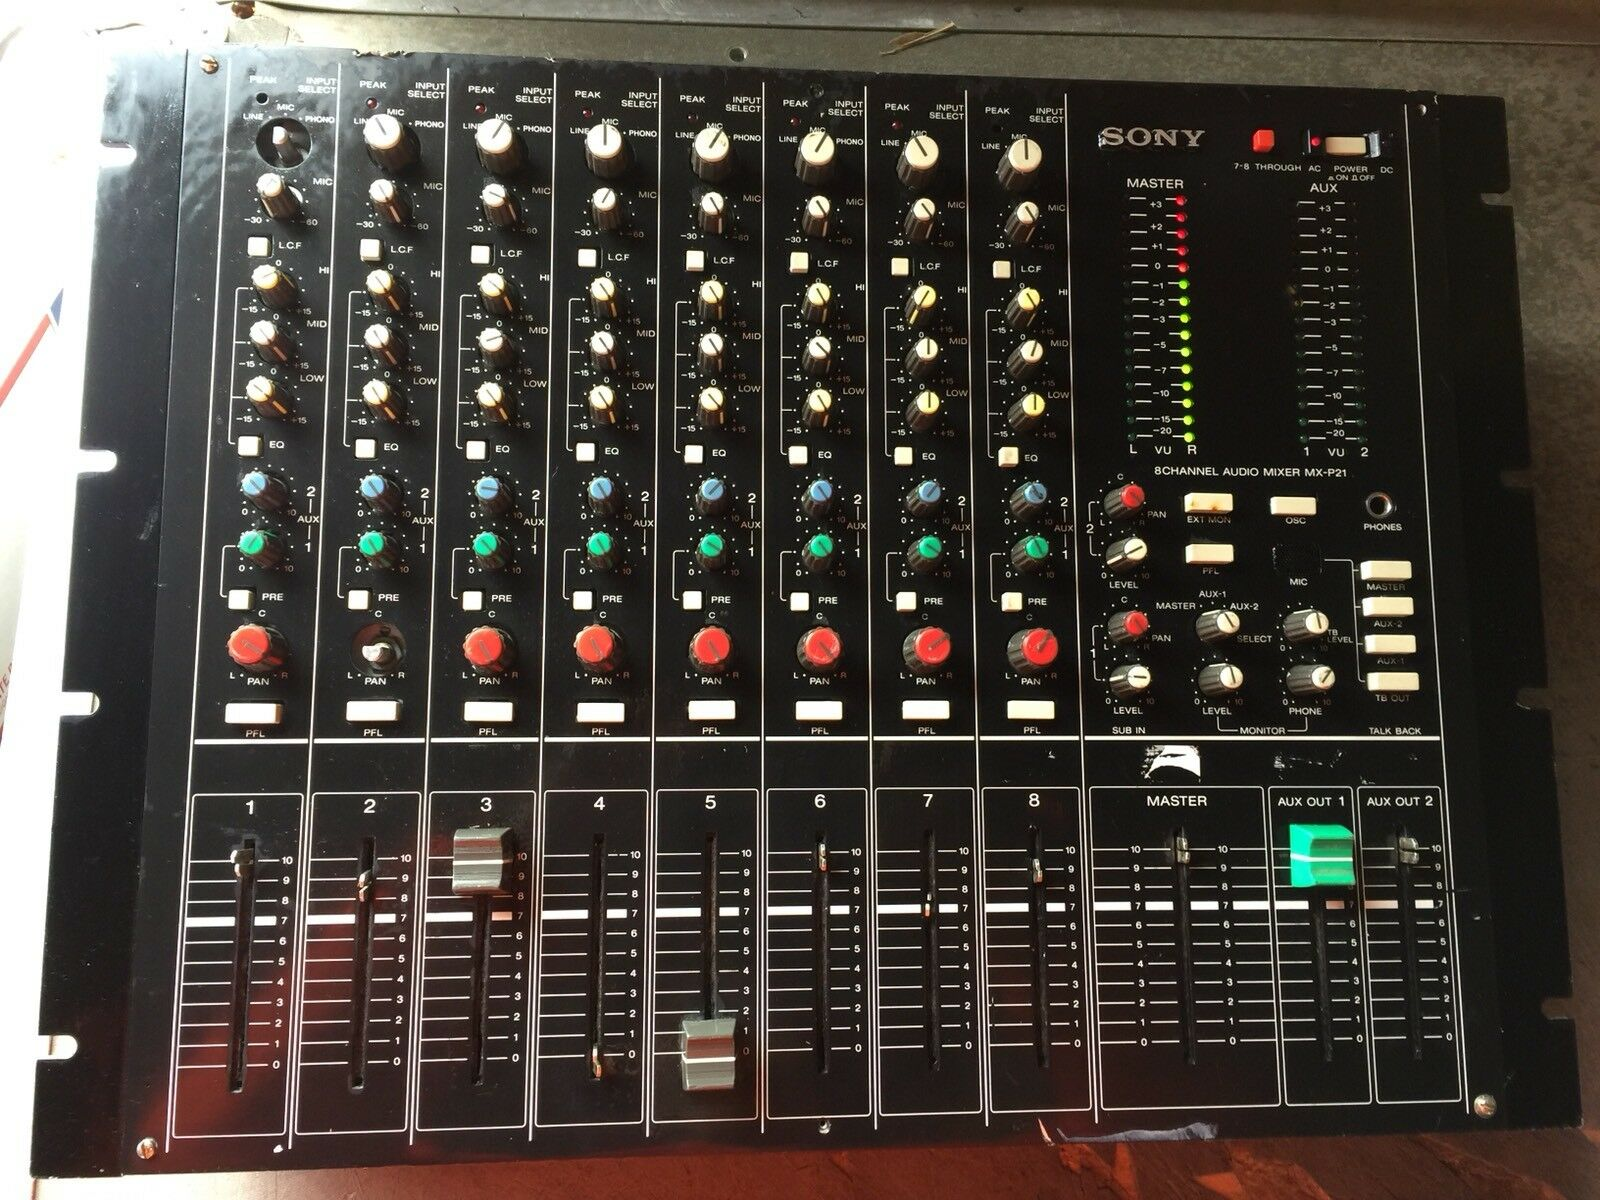 Sony MX-P21 8 Channel Audio Mixer